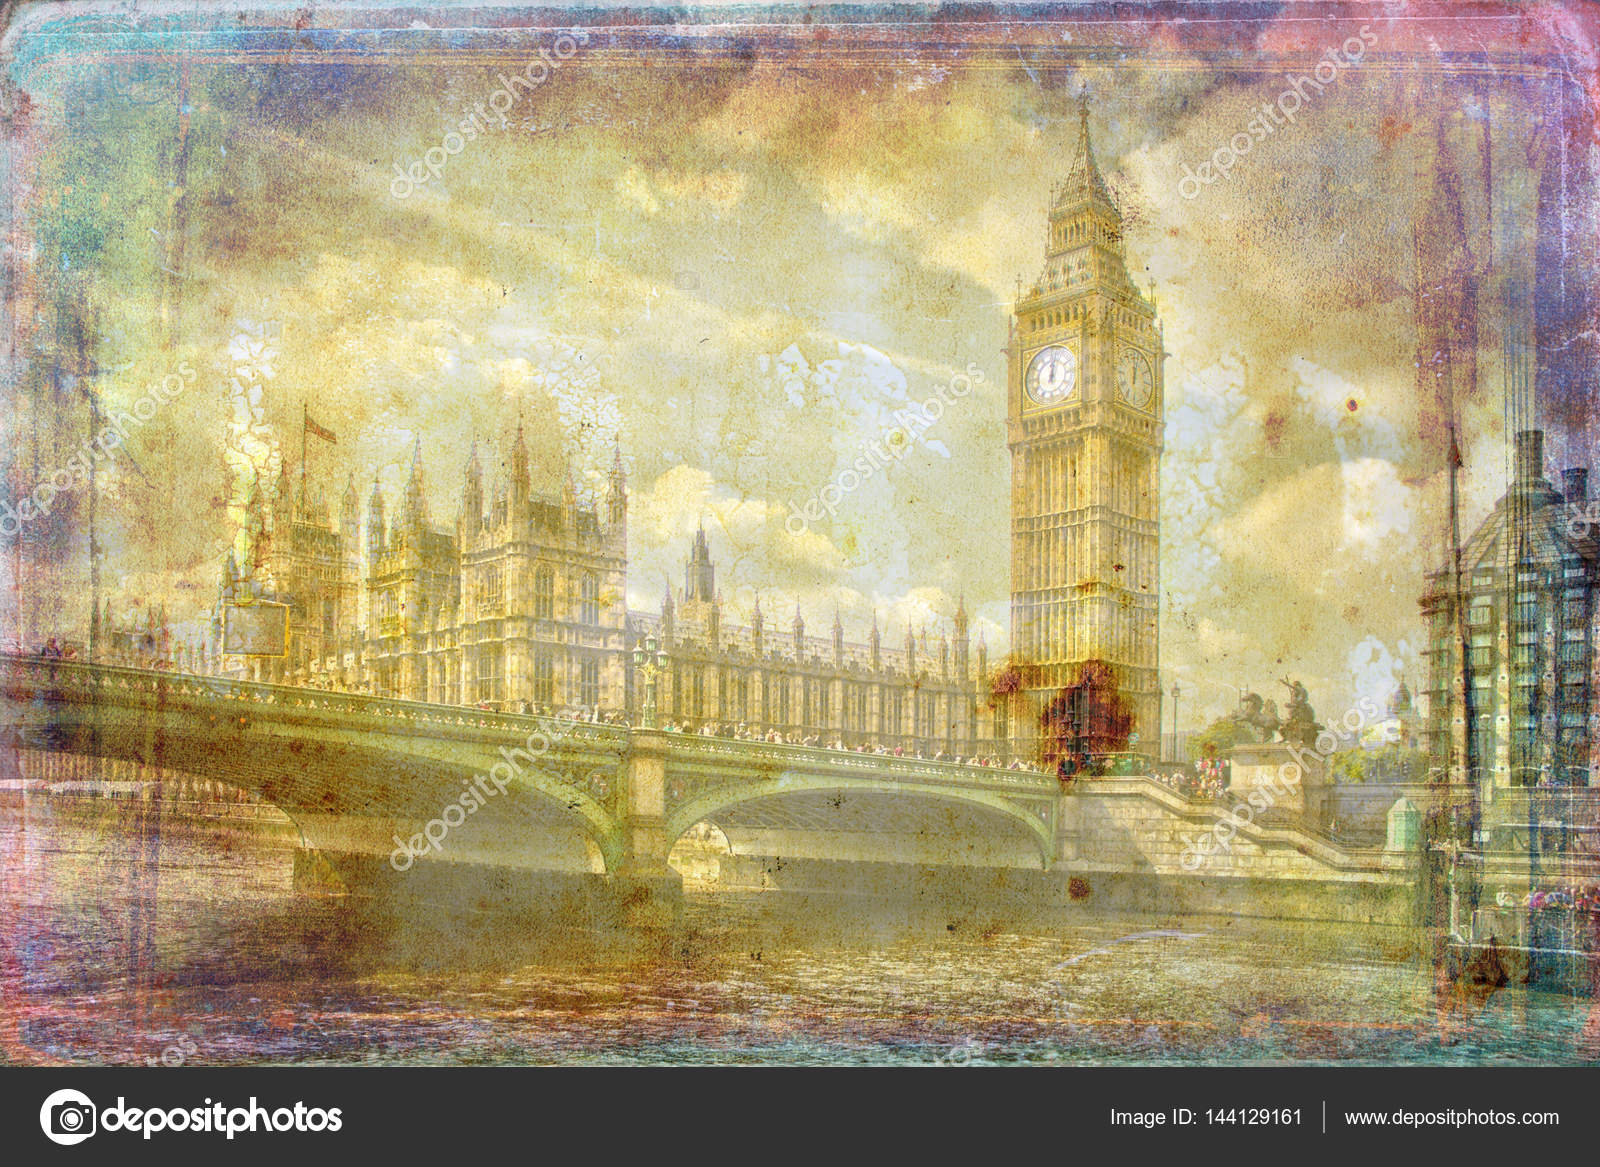 depositphotos 144129161-stock-photo-london-art-texture-illustration